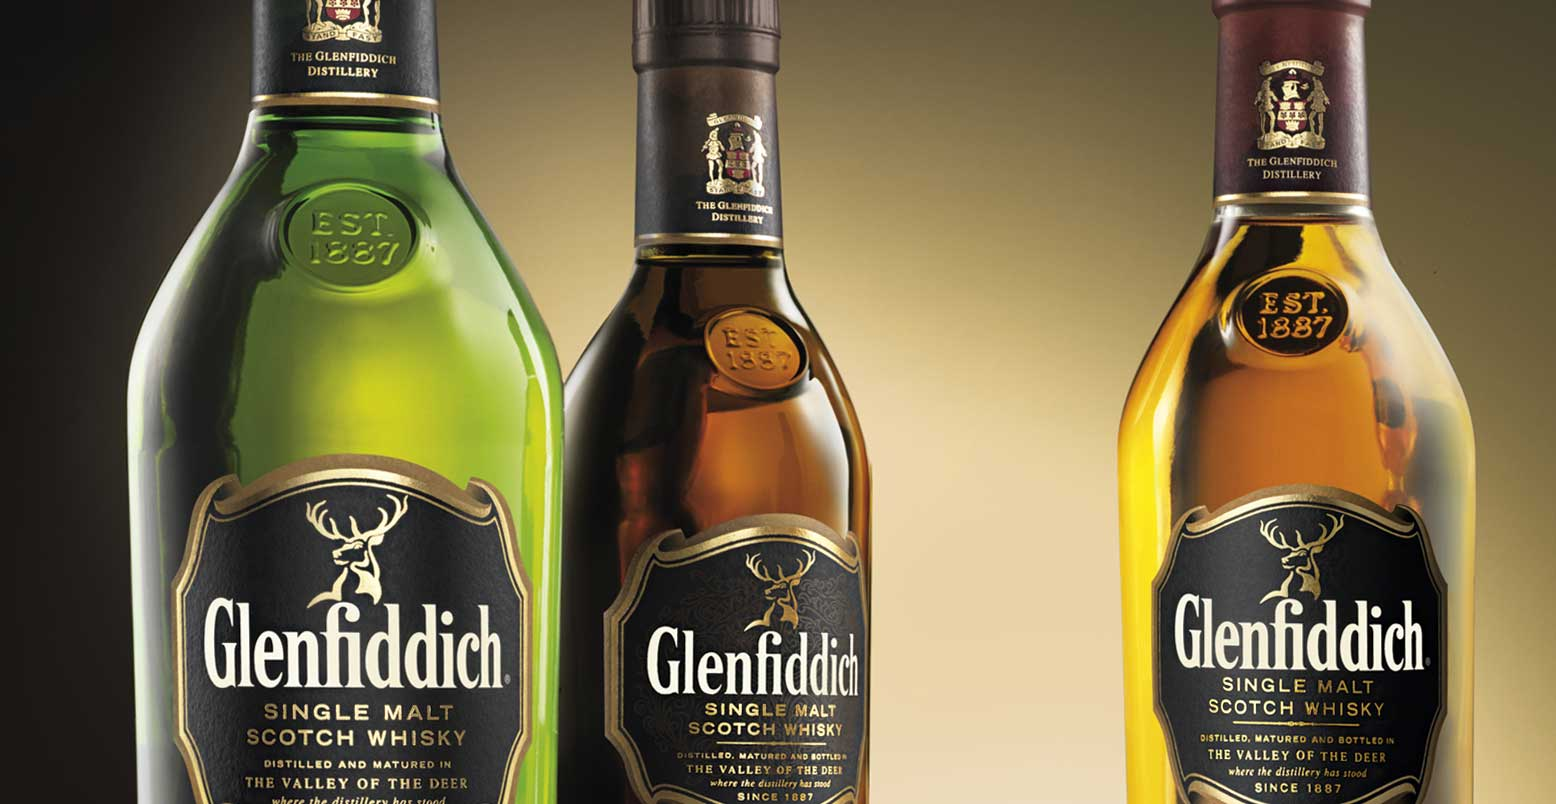 Glenfiddich Bottles